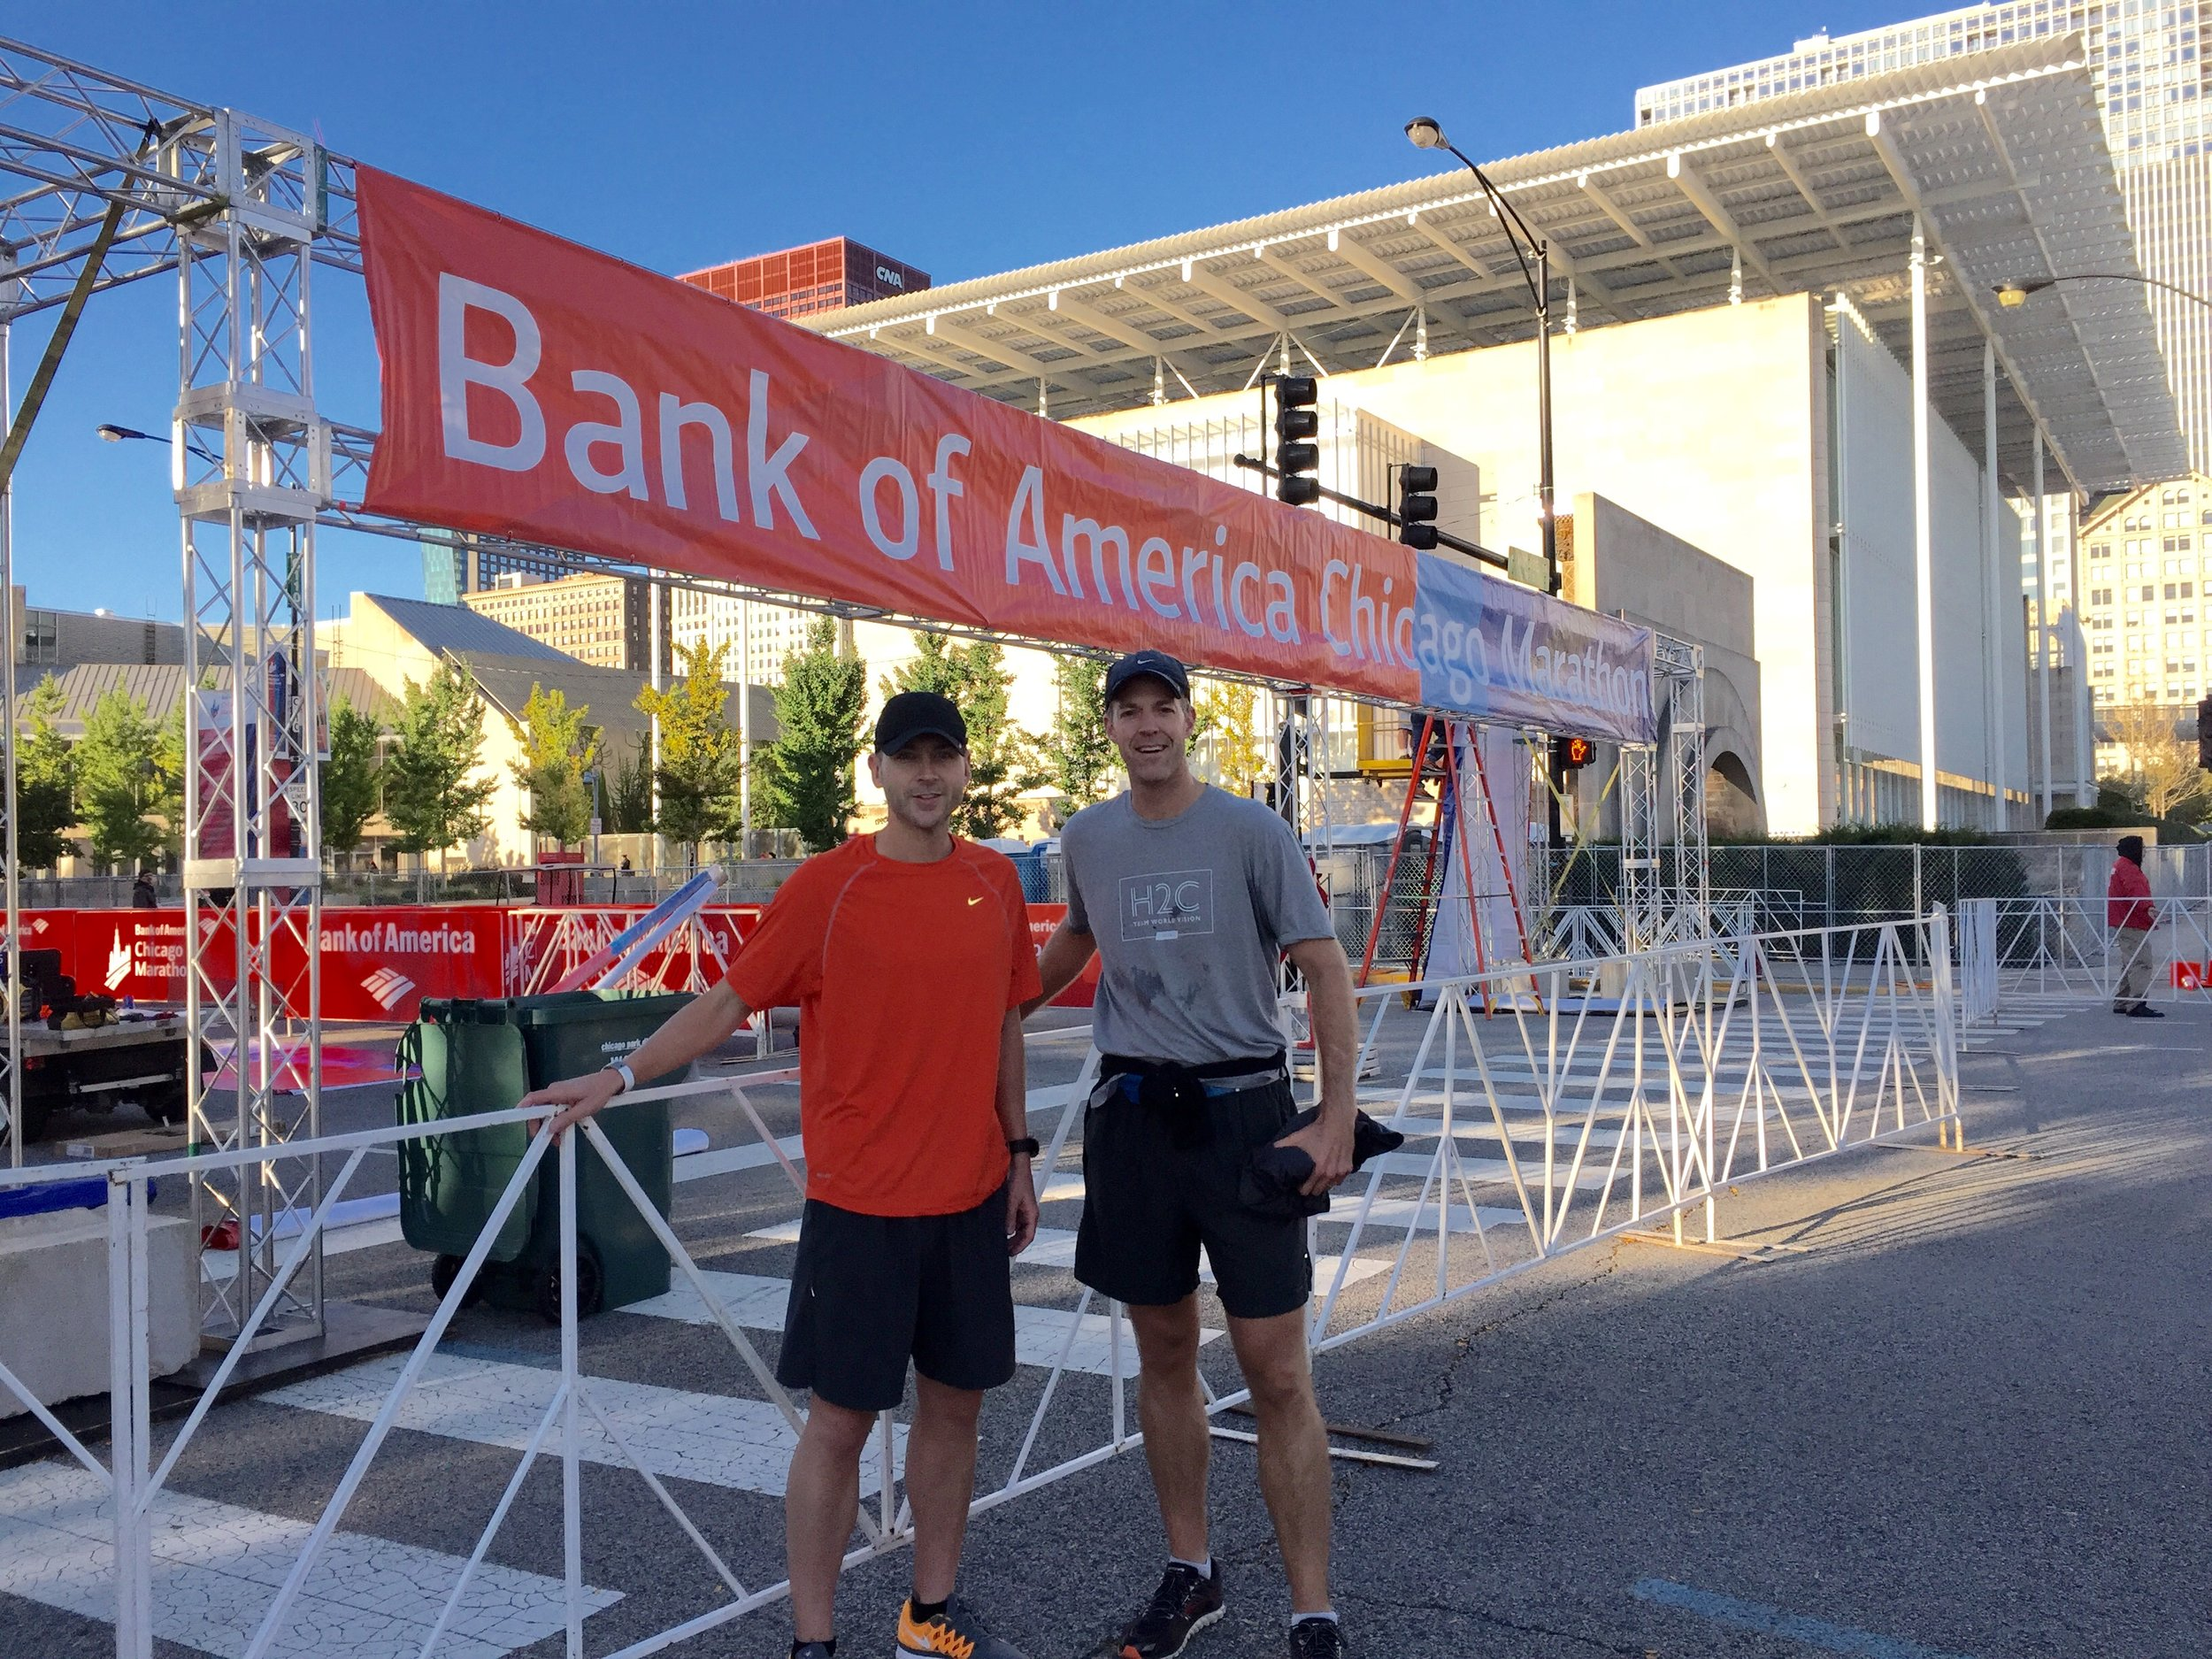 [With Cory during our shakeout run at the starting line for tomorrow's race]